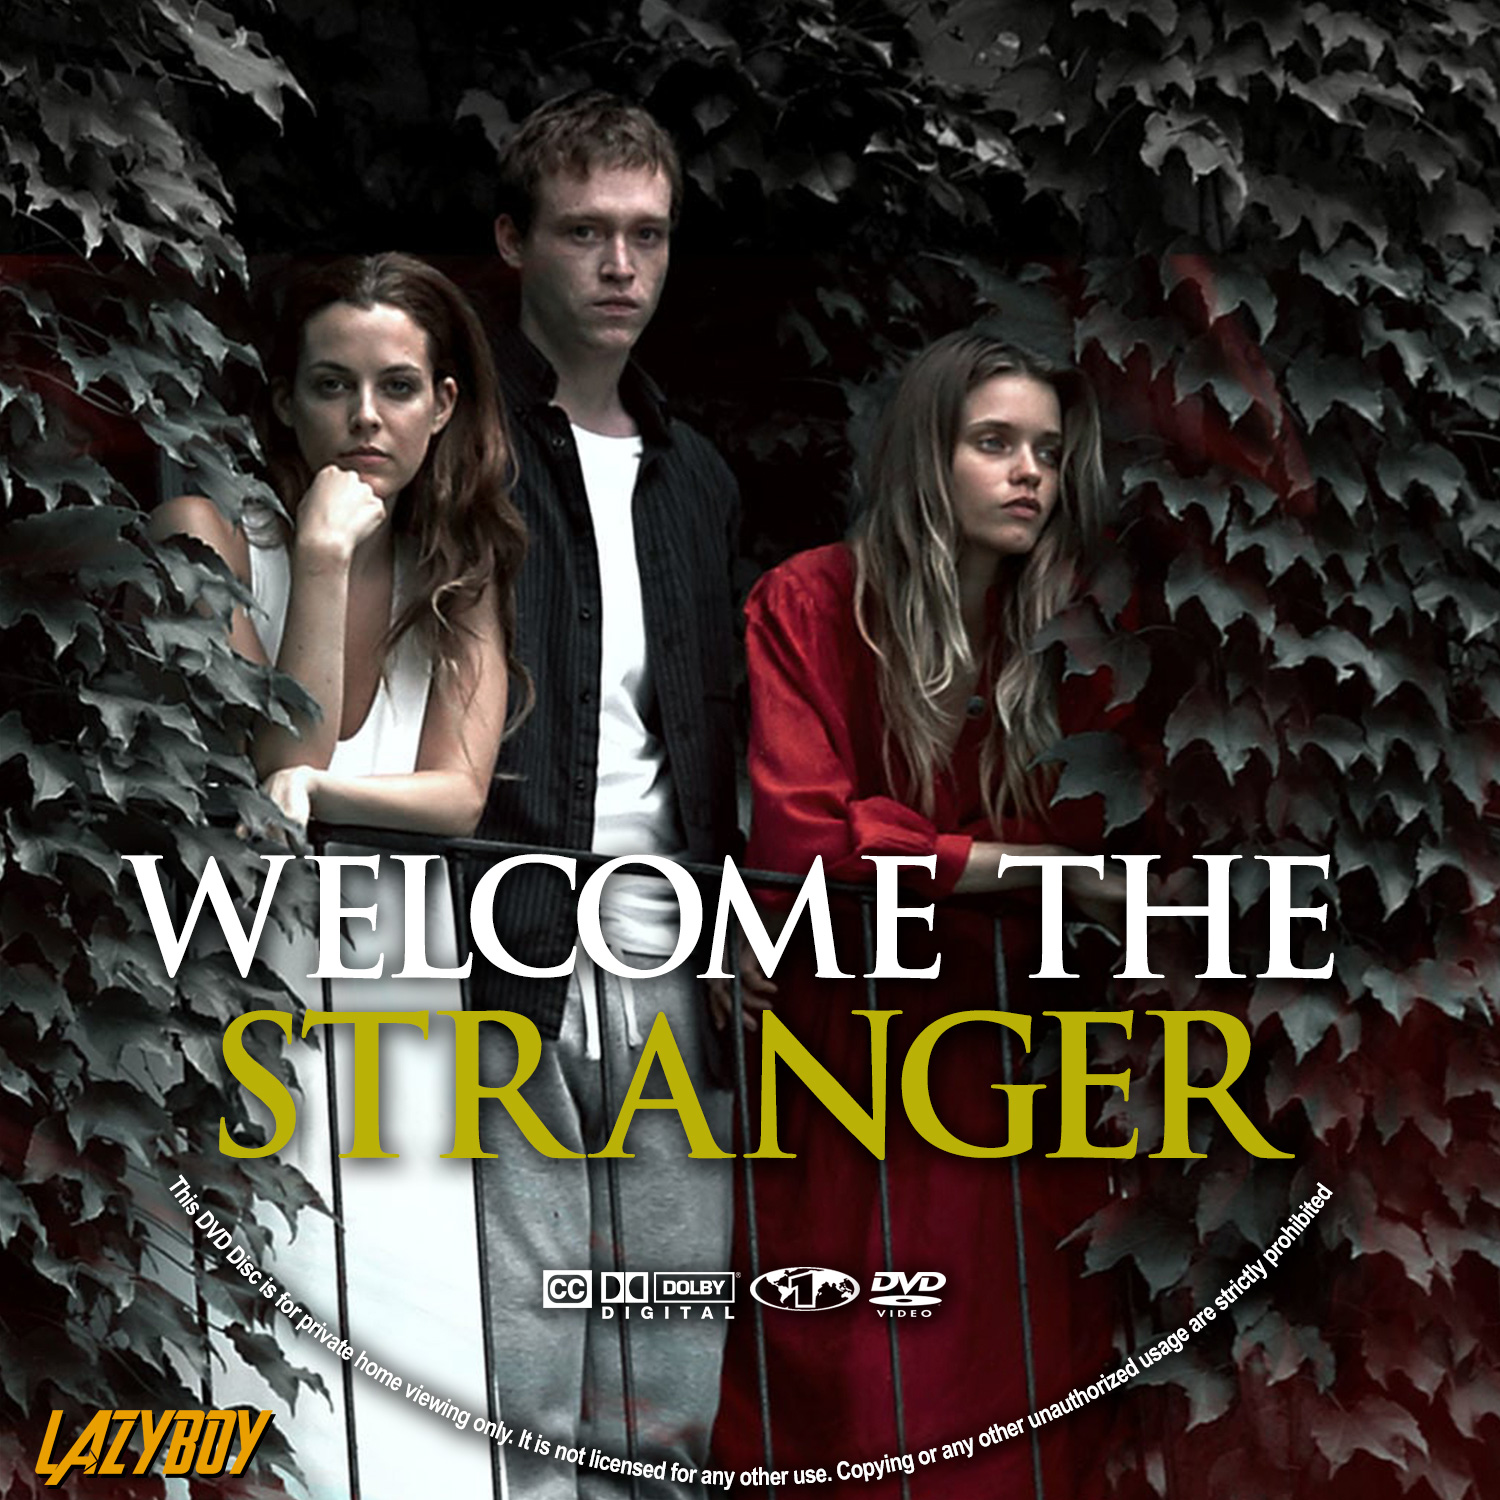 welcome the stranger dvd label cover addict freecovers